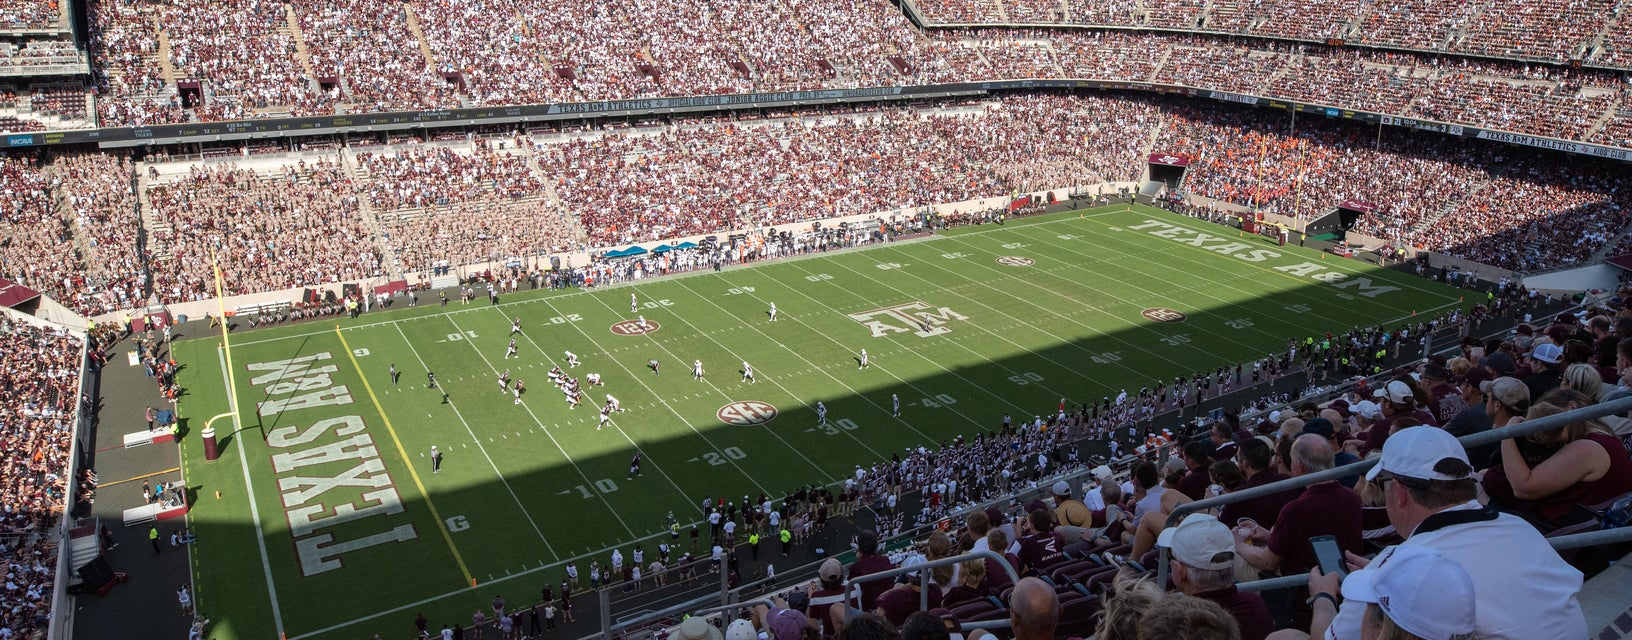 Seat view from Upper Level Sideline